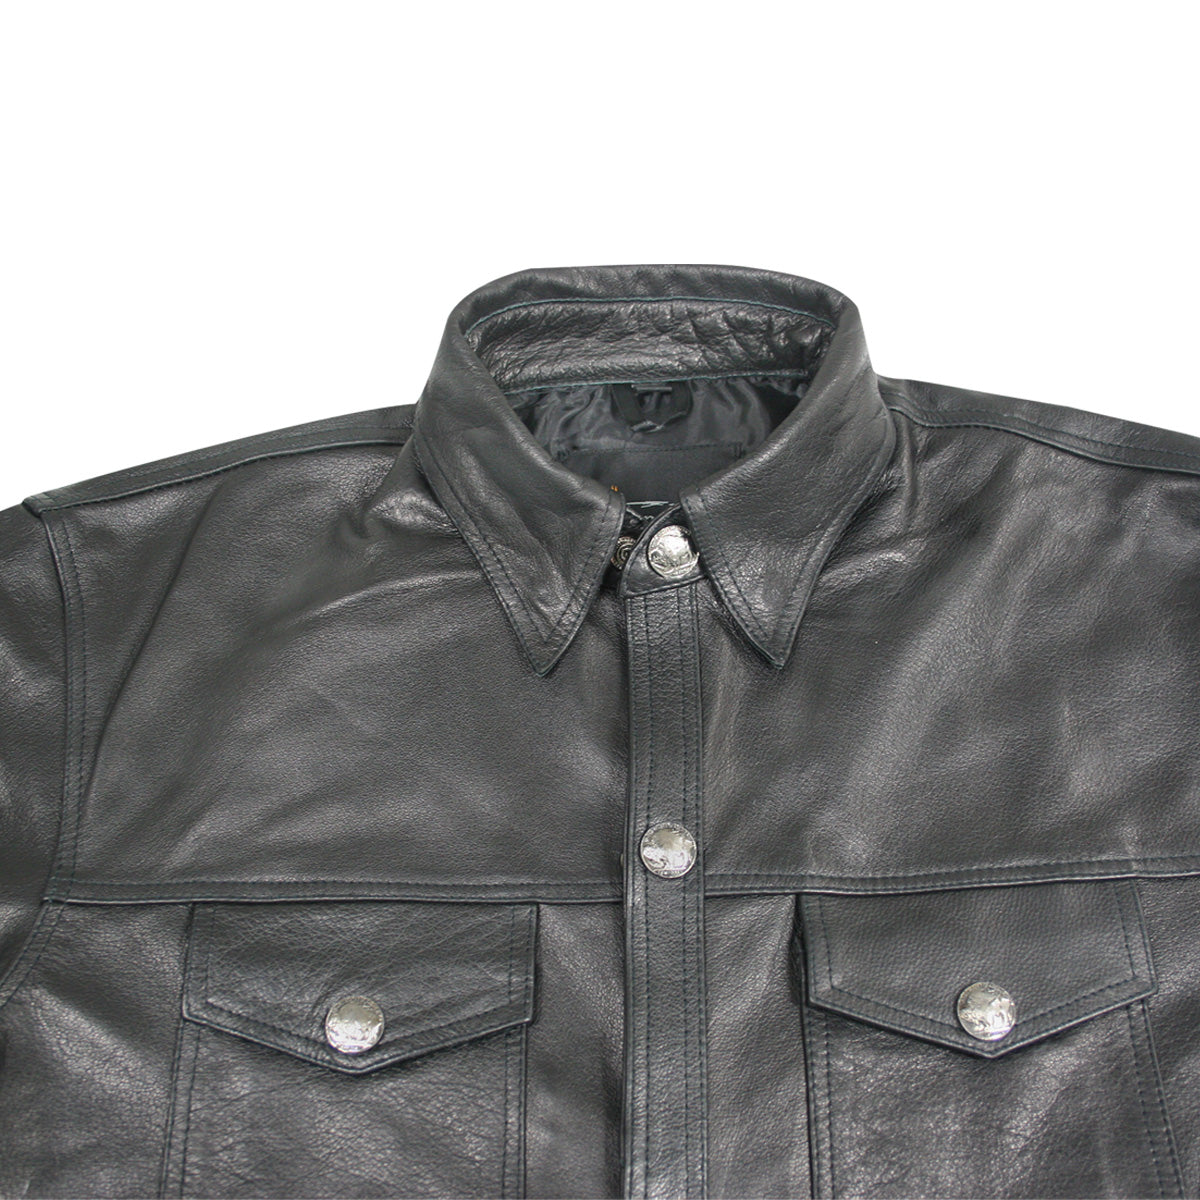 Xelement XS908B Men's 'Nickel' Black Casual Leather Shirt with Vintage